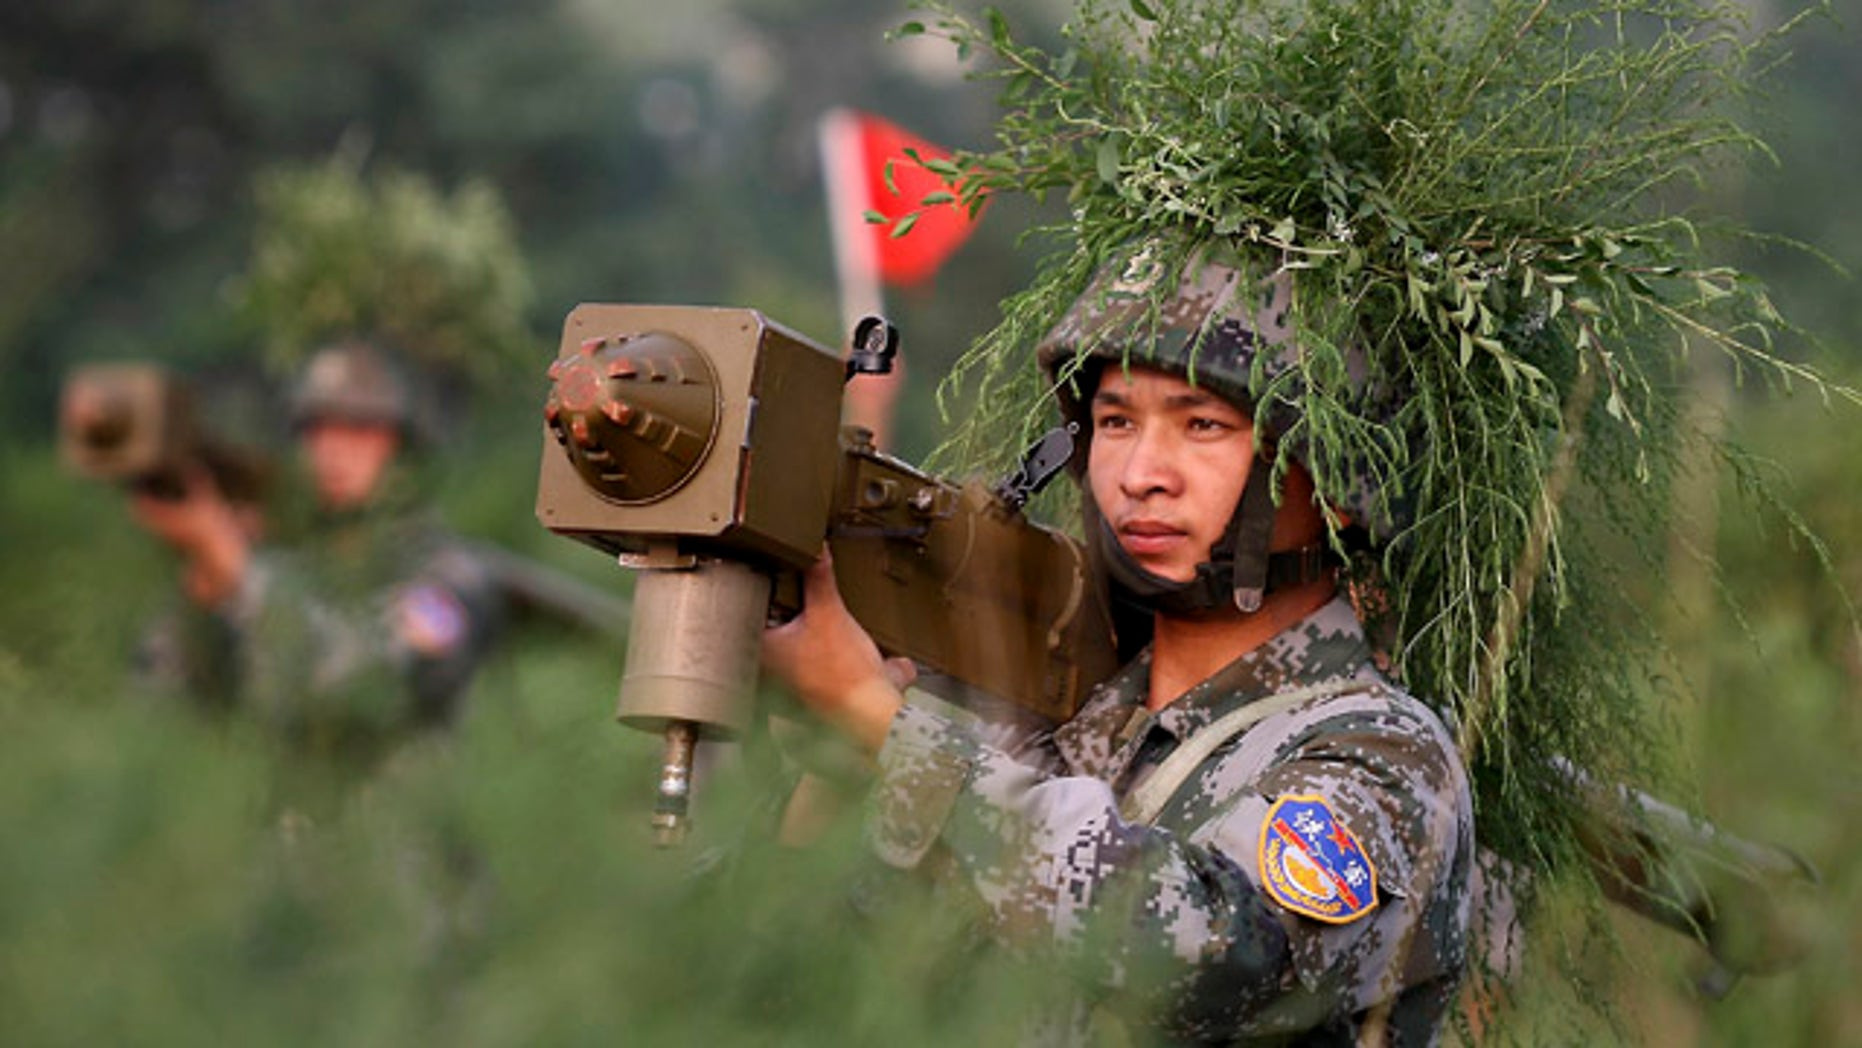 Aug. 4: Chinese soldiers take part in the Vanguard 2010 live-fire air defense exercise in central China's Henan Province.